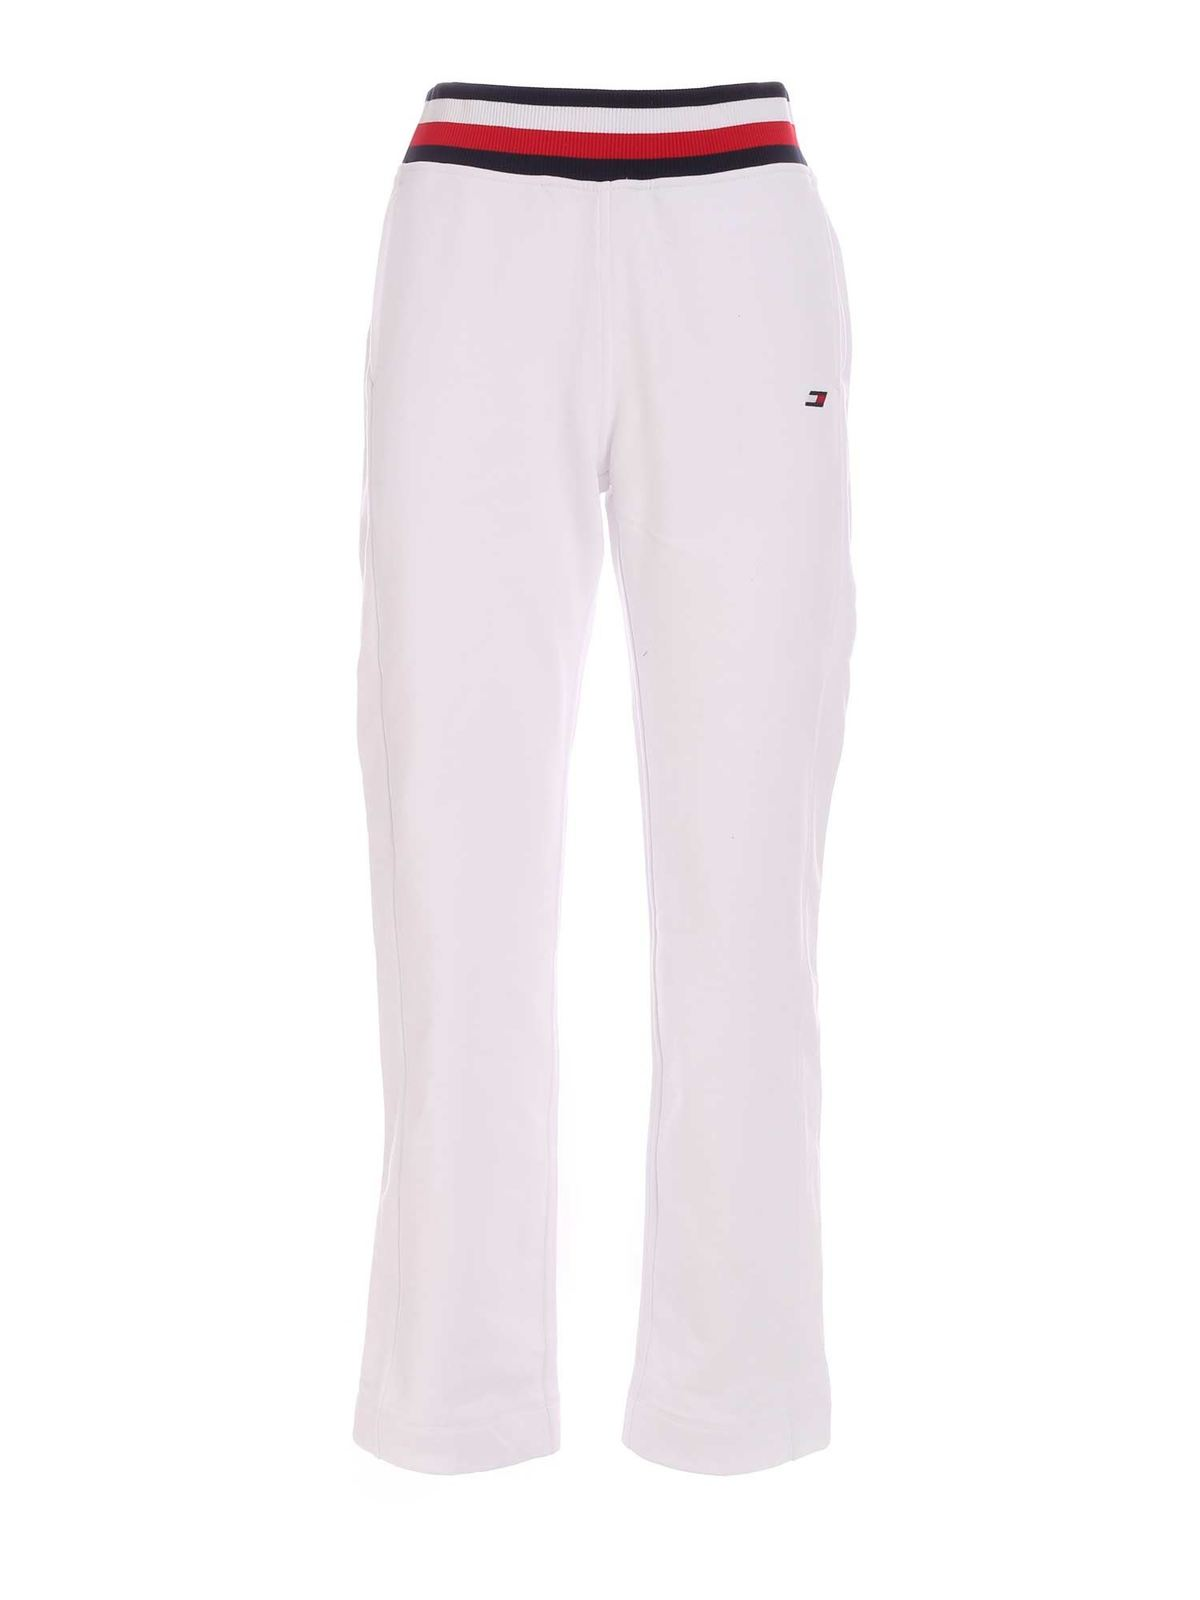 Tommy Hilfiger LOGO DETAIL JOGGERS IN WHITE